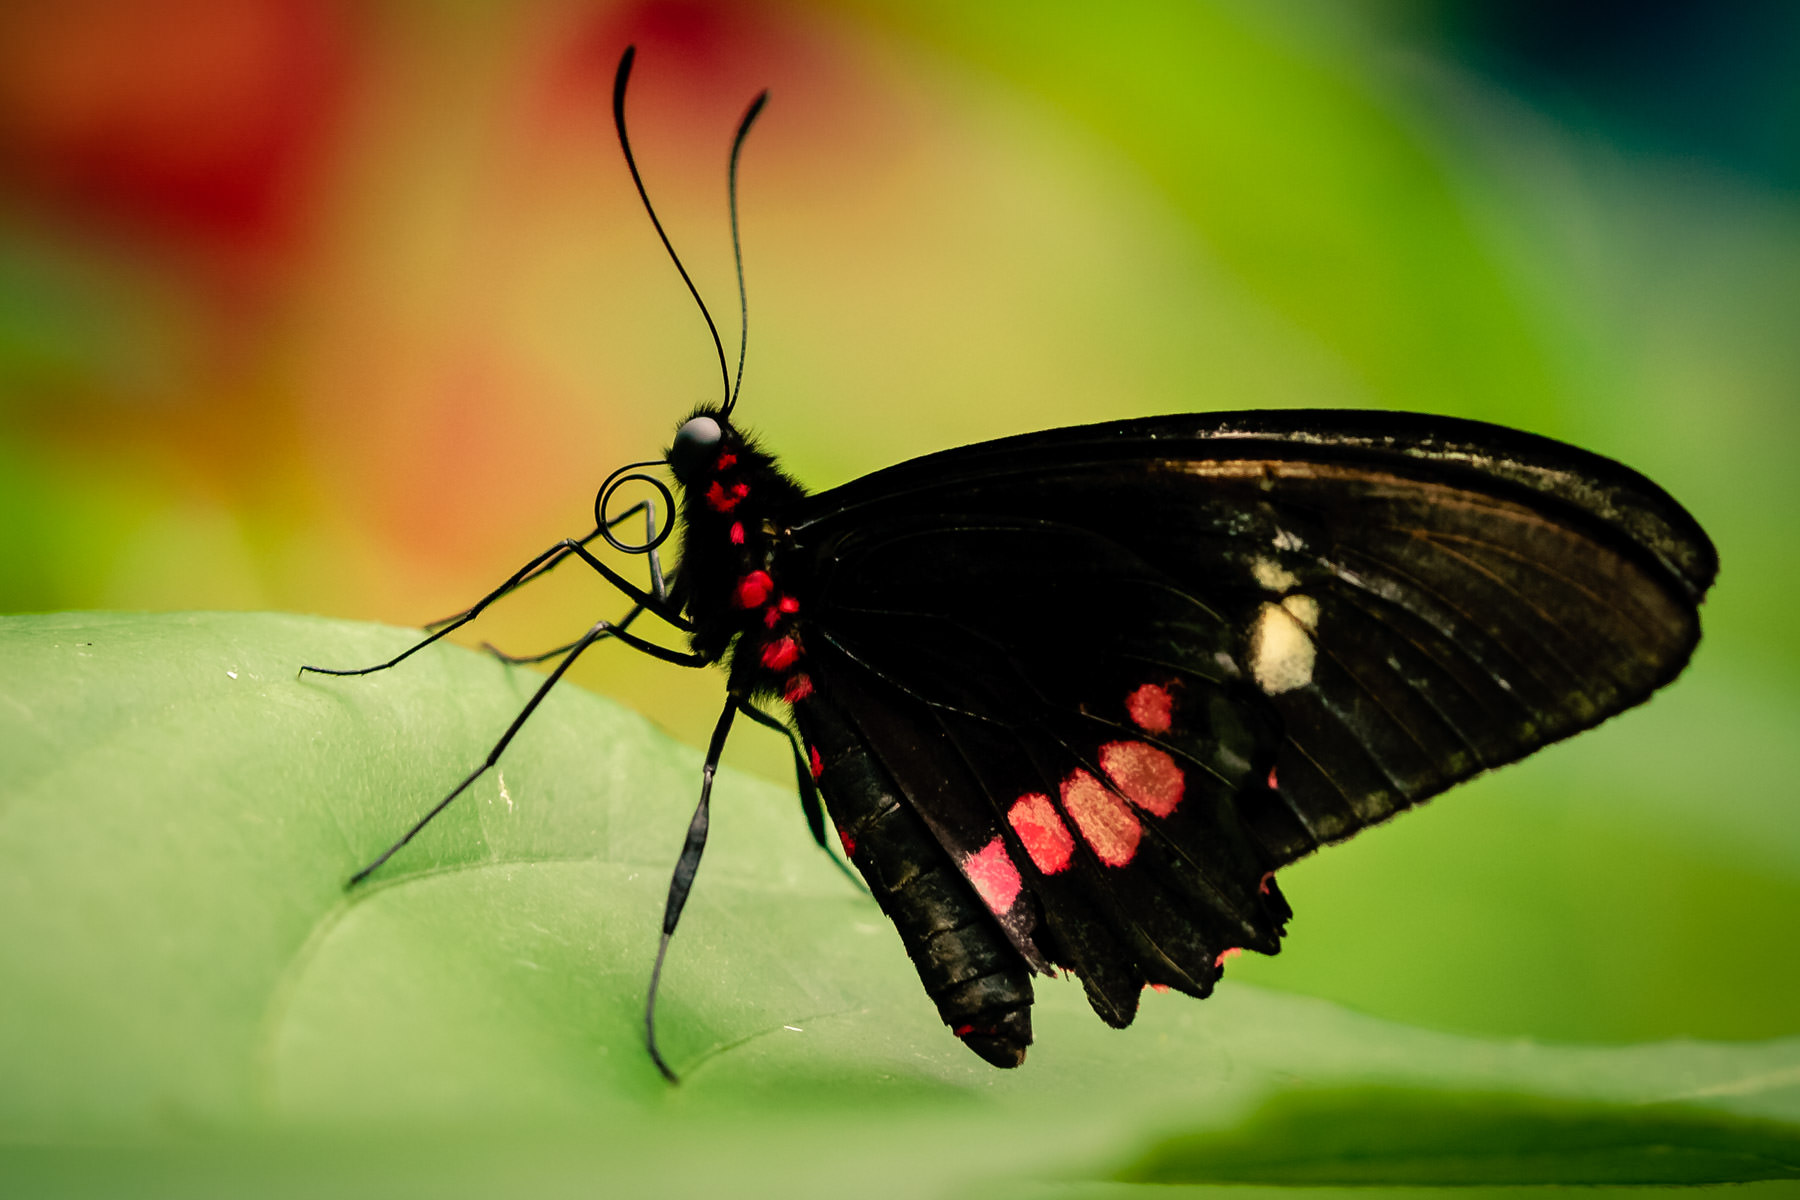 A black butterfly at Houston's Cockrell Butterfly Center.